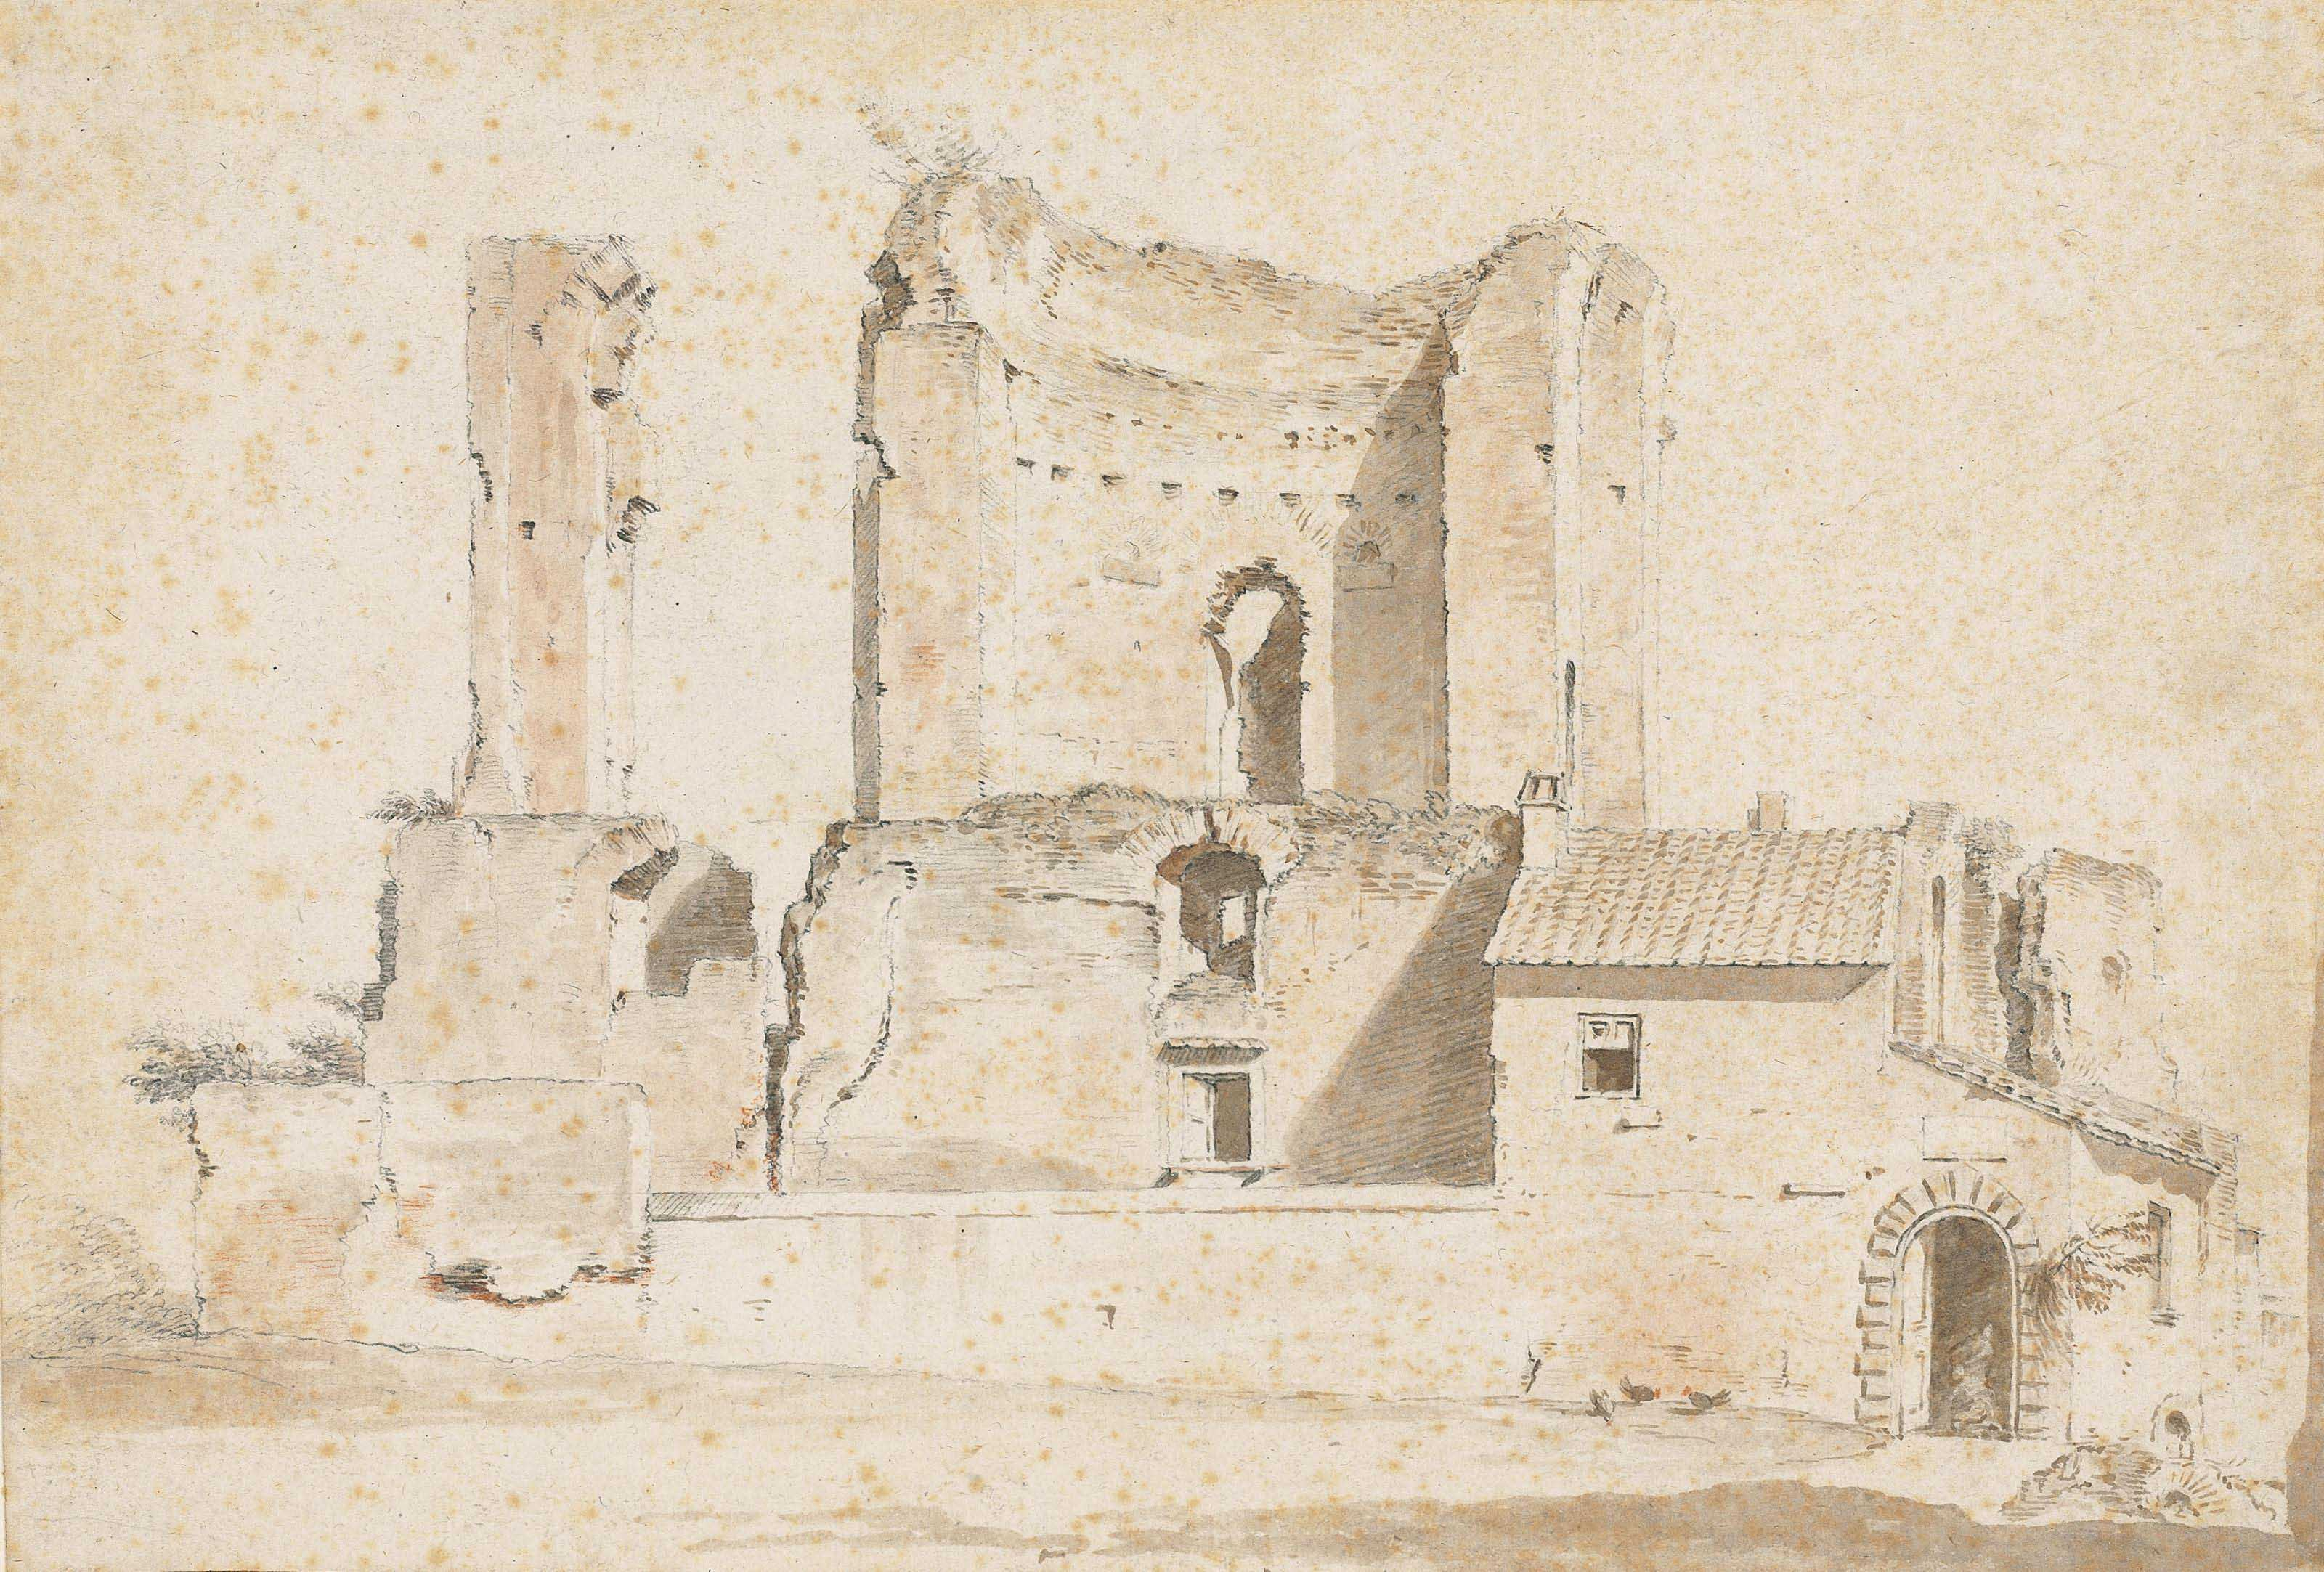 The Nymphaeum on the Esquiline known as the Trofei di Mario, Rome